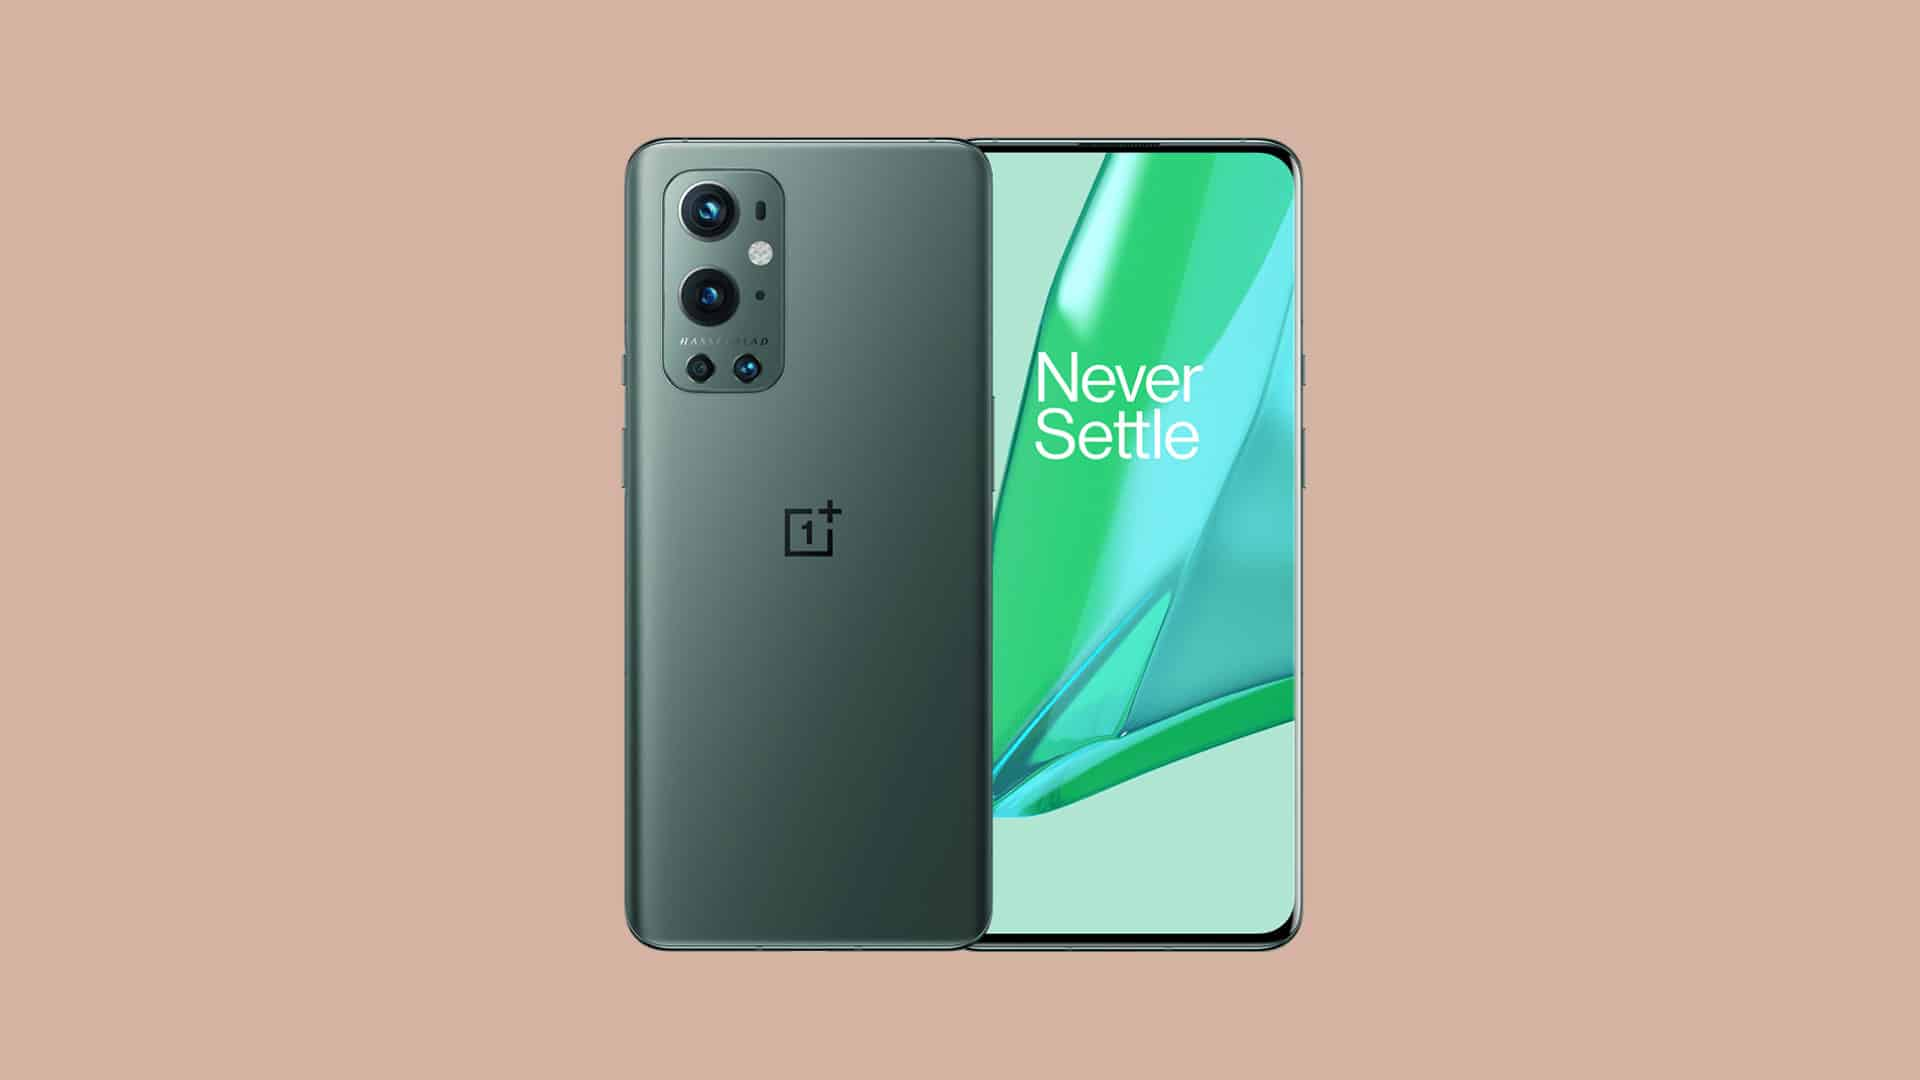 OxygenOS 11.2.5.5 - OnePlus 9 / 9 Pro May 2021 update